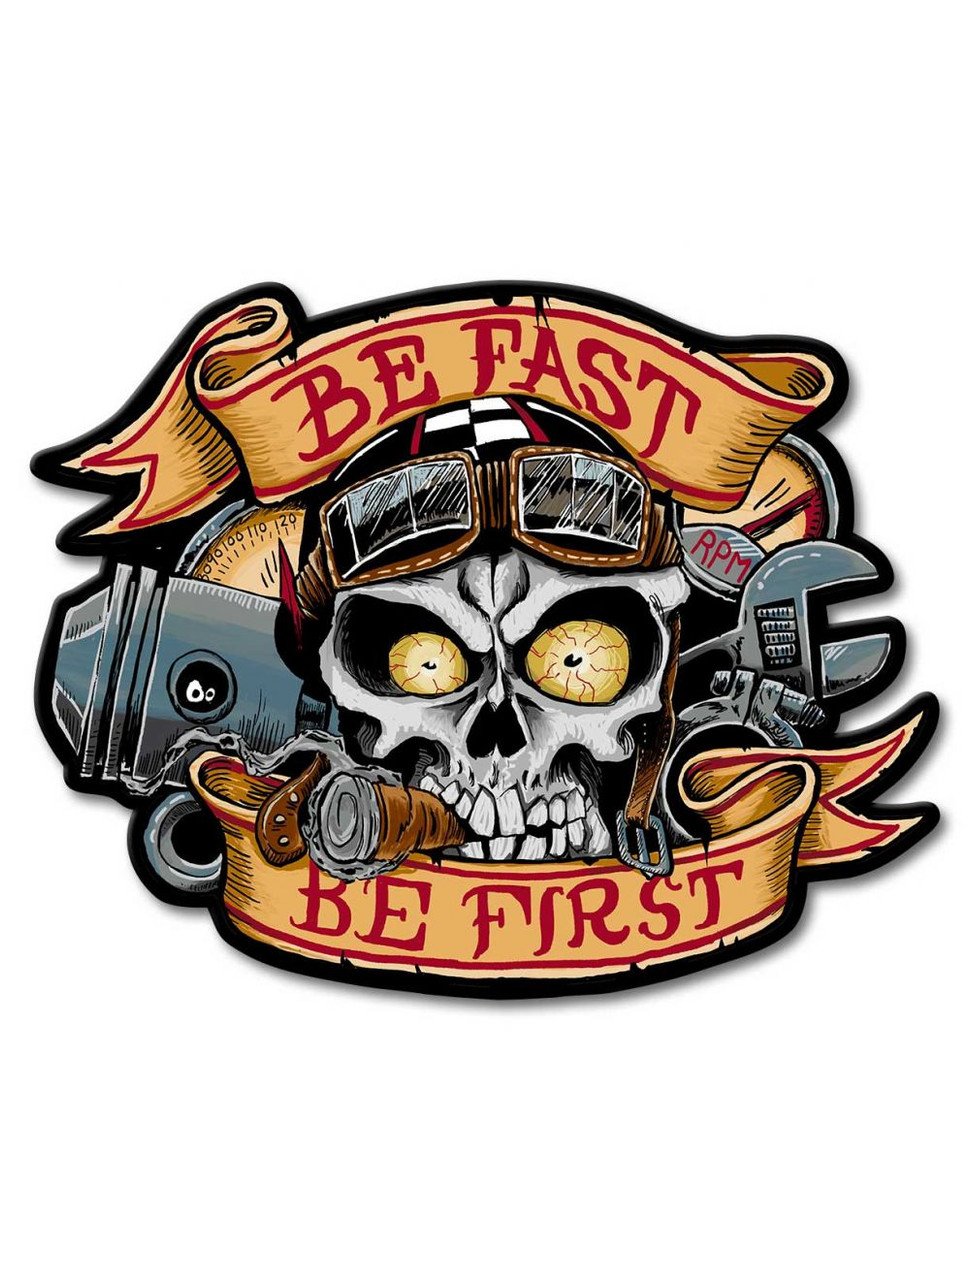 Be Fast Be First Metal Sign 16 x 13 Inches